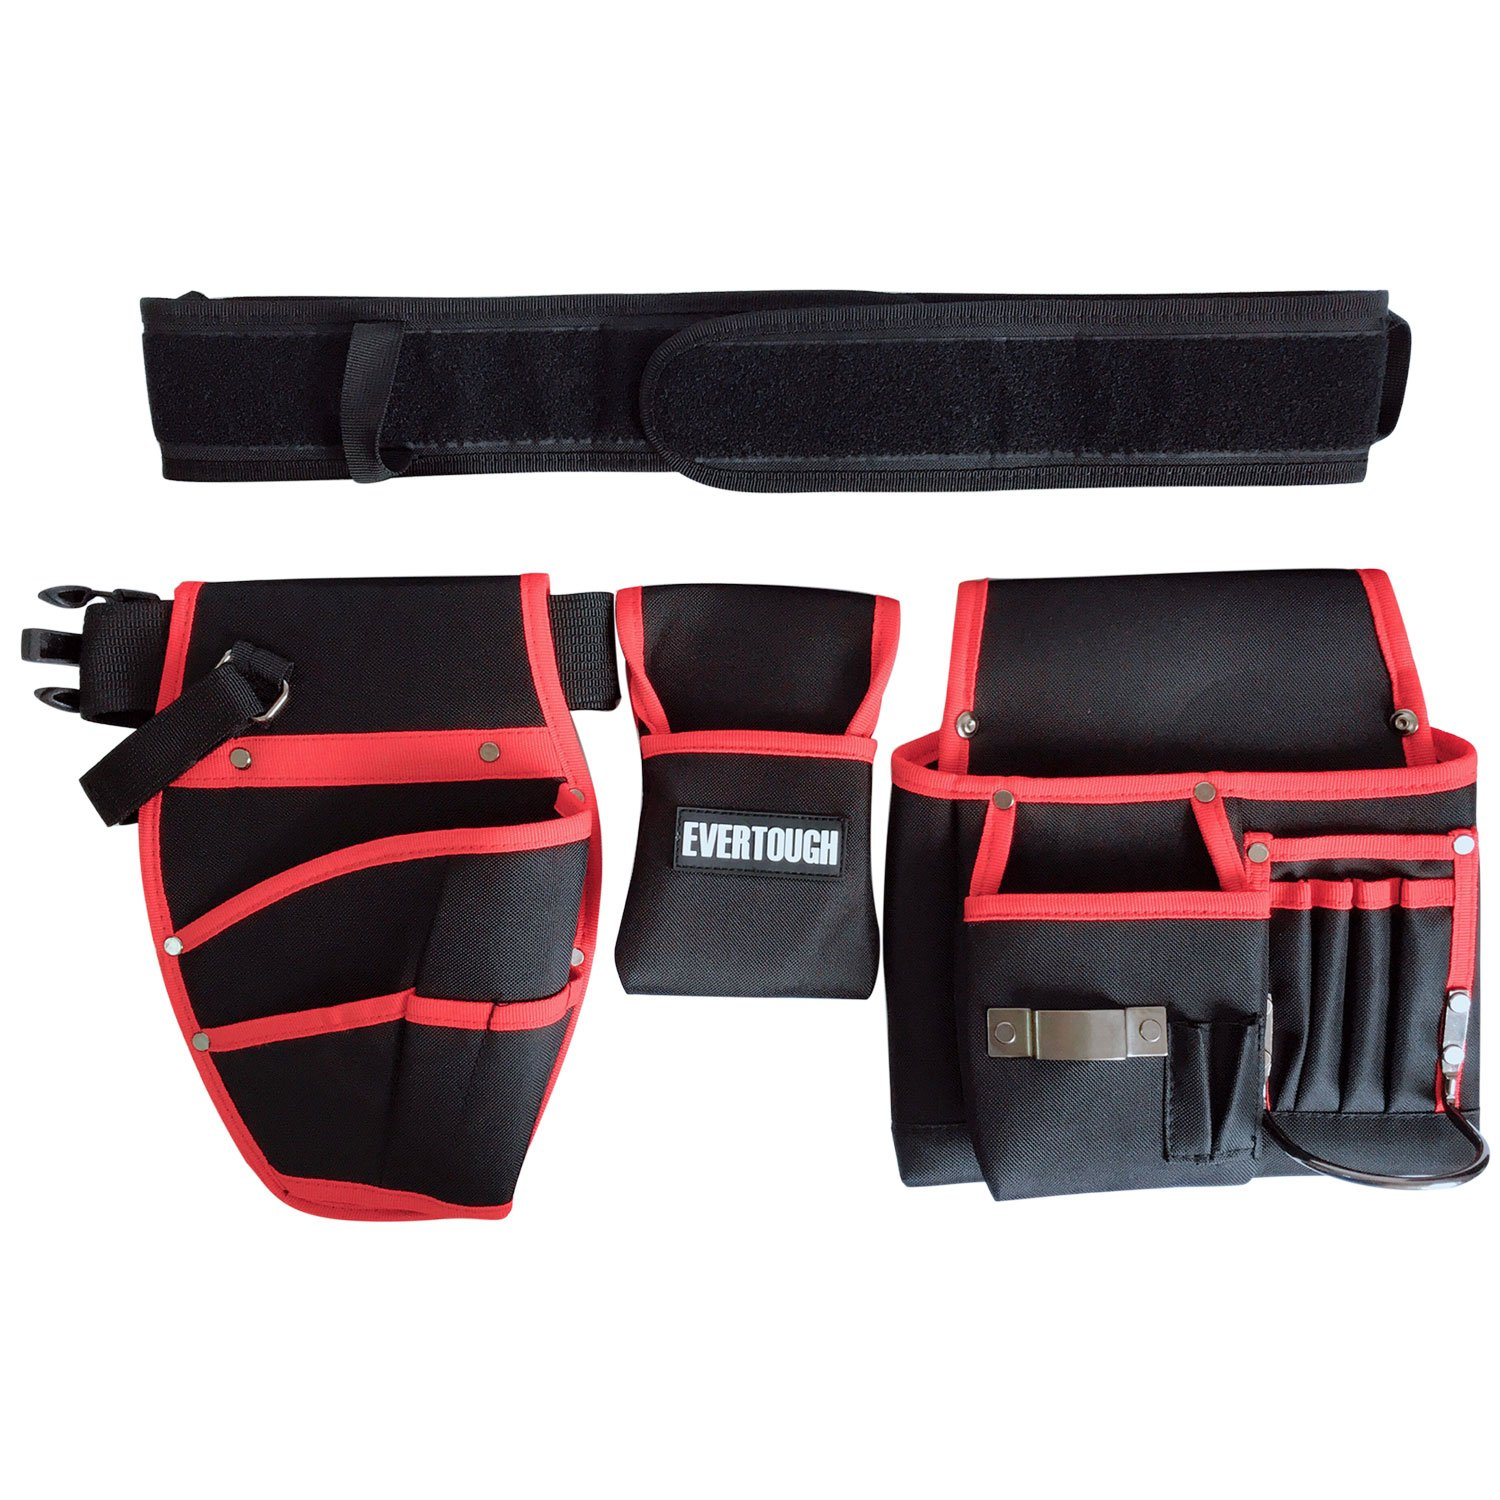 Heavy-Duty Drill Holster Cordless Tool Holder, Professional Carpenter's Combo Belt & Bags, Durable Electrical Maintenance Tool Pouch Work Belt with Adjustable Waist Strap